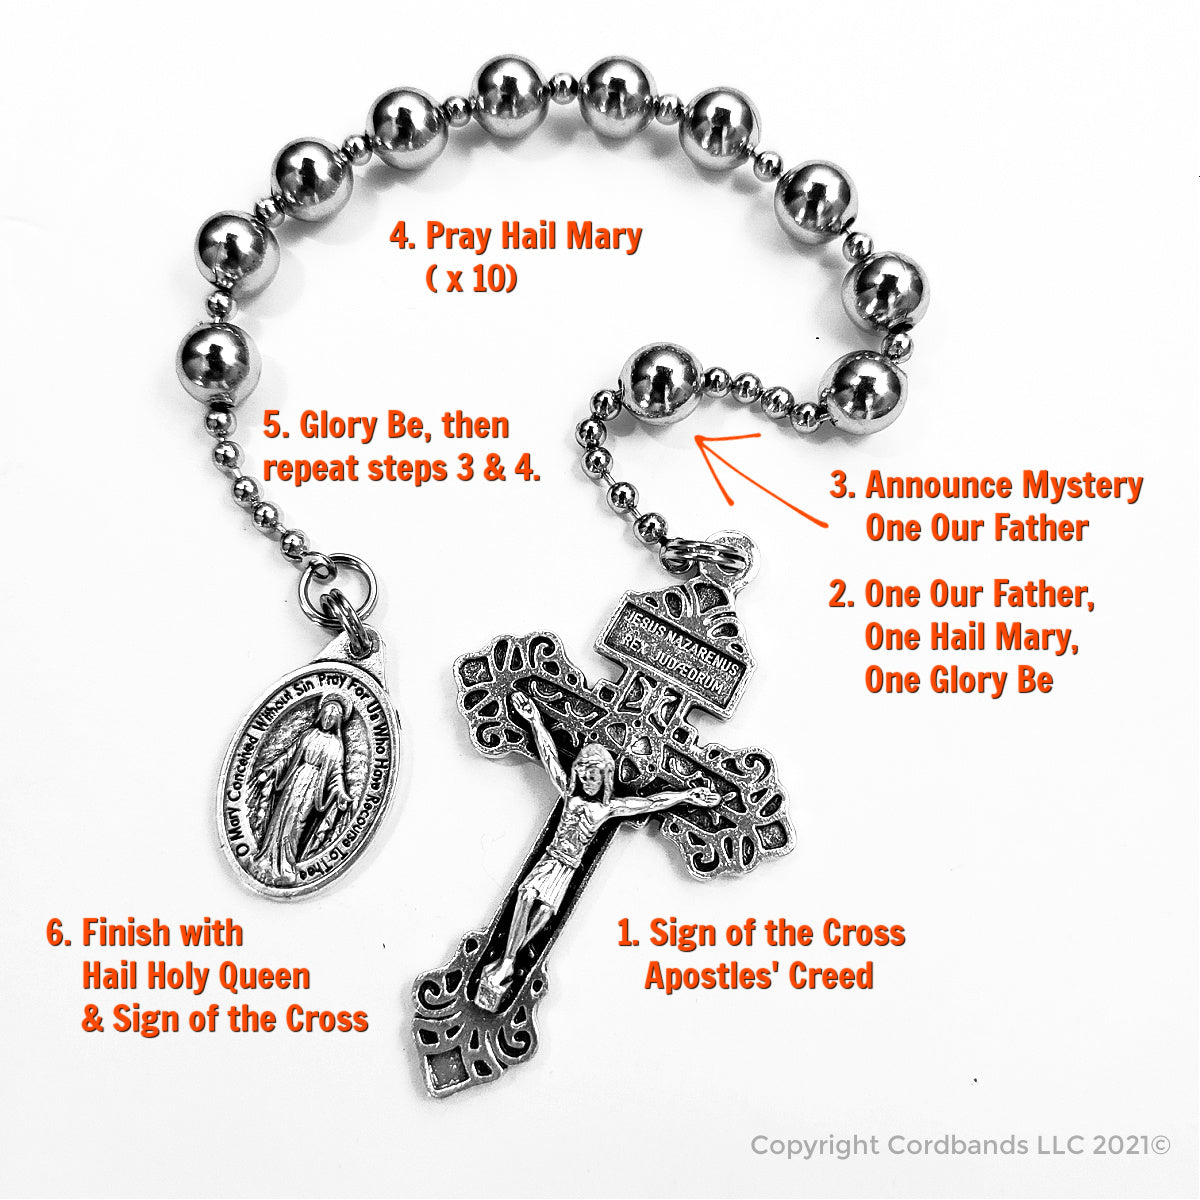 How to Pray on a Pocket One Decade Rosary